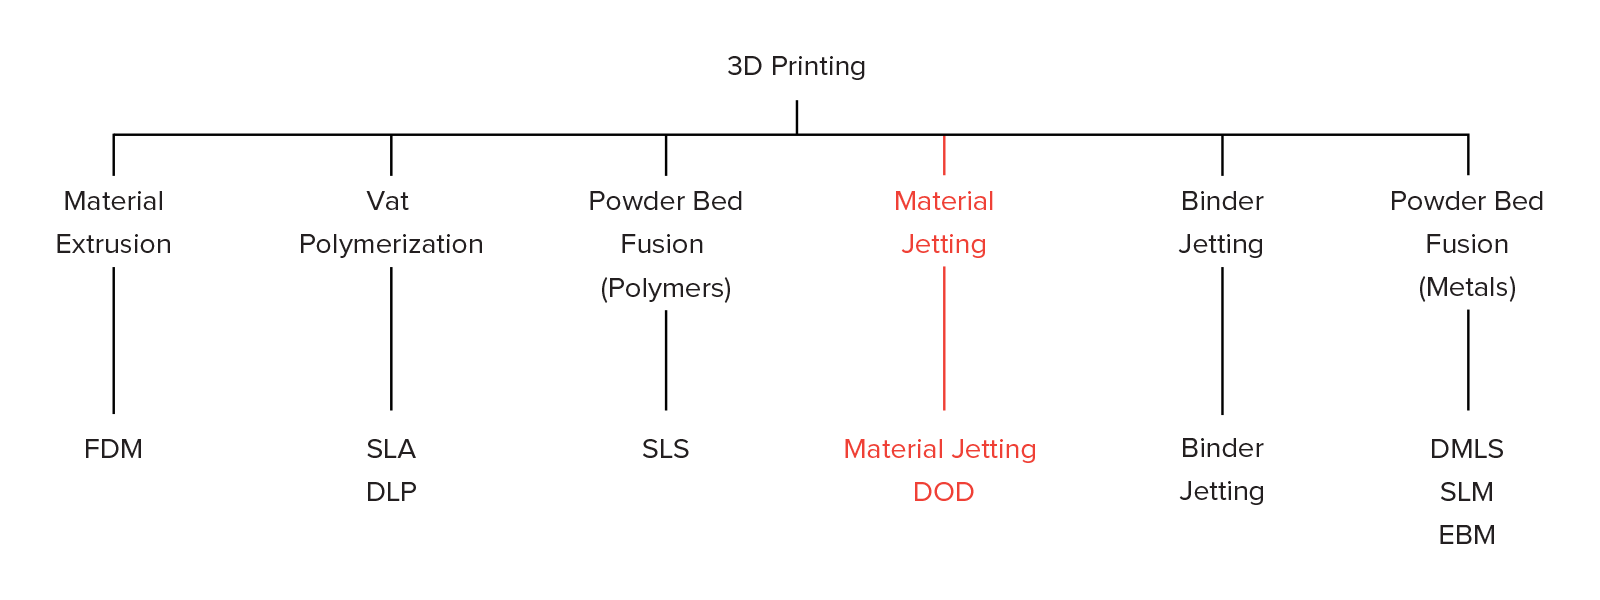 Stereolithography: Materials, Processes and Applications